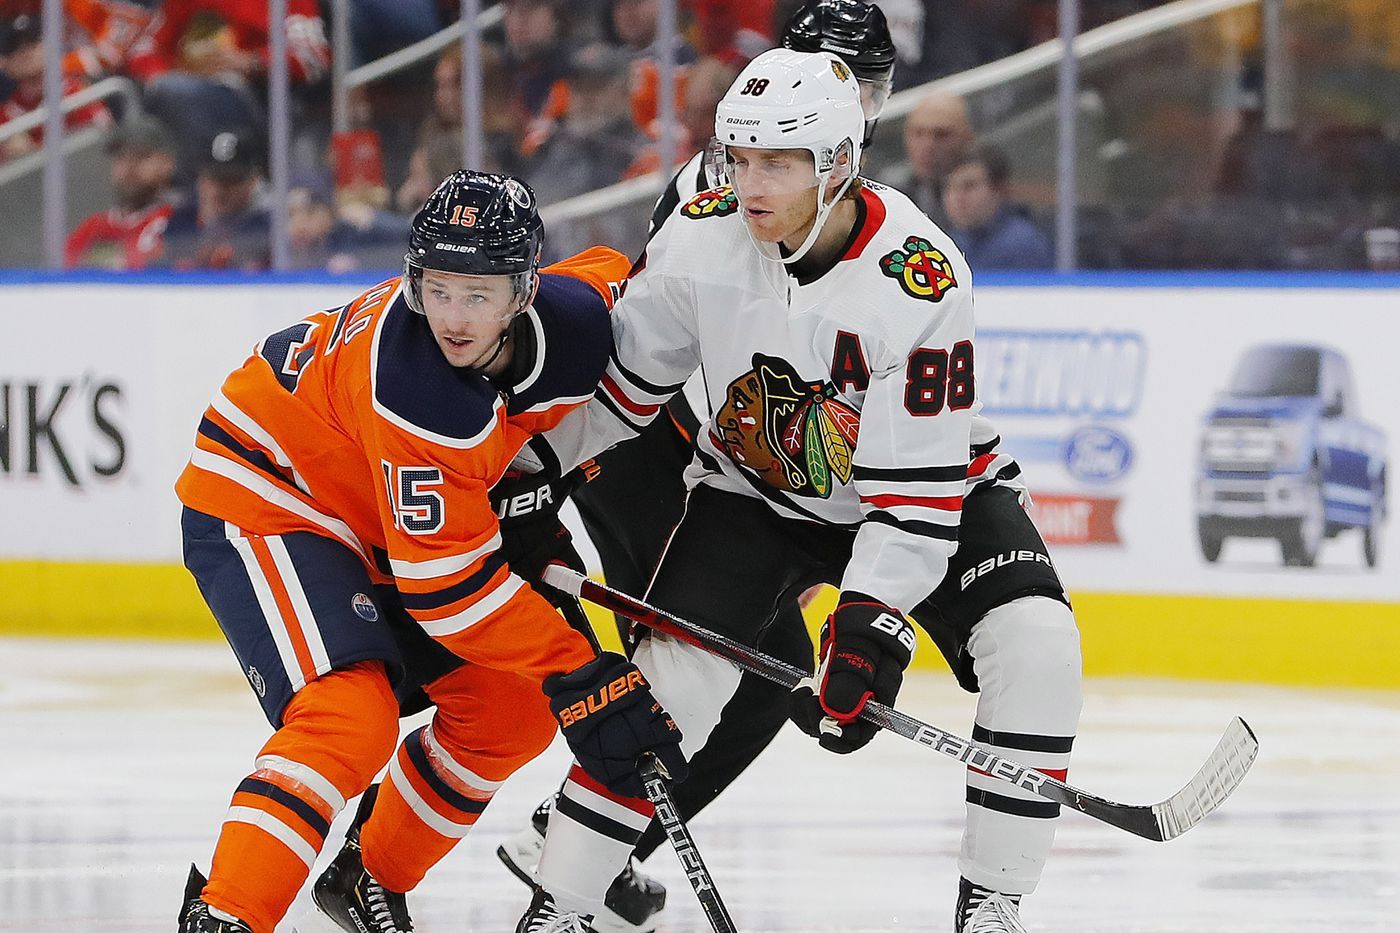 2020 Nhl Stanley Cup Schedule Times For Blackhawks Vs Oilers Exhibition Game Set Vs Blues Second City Hockey